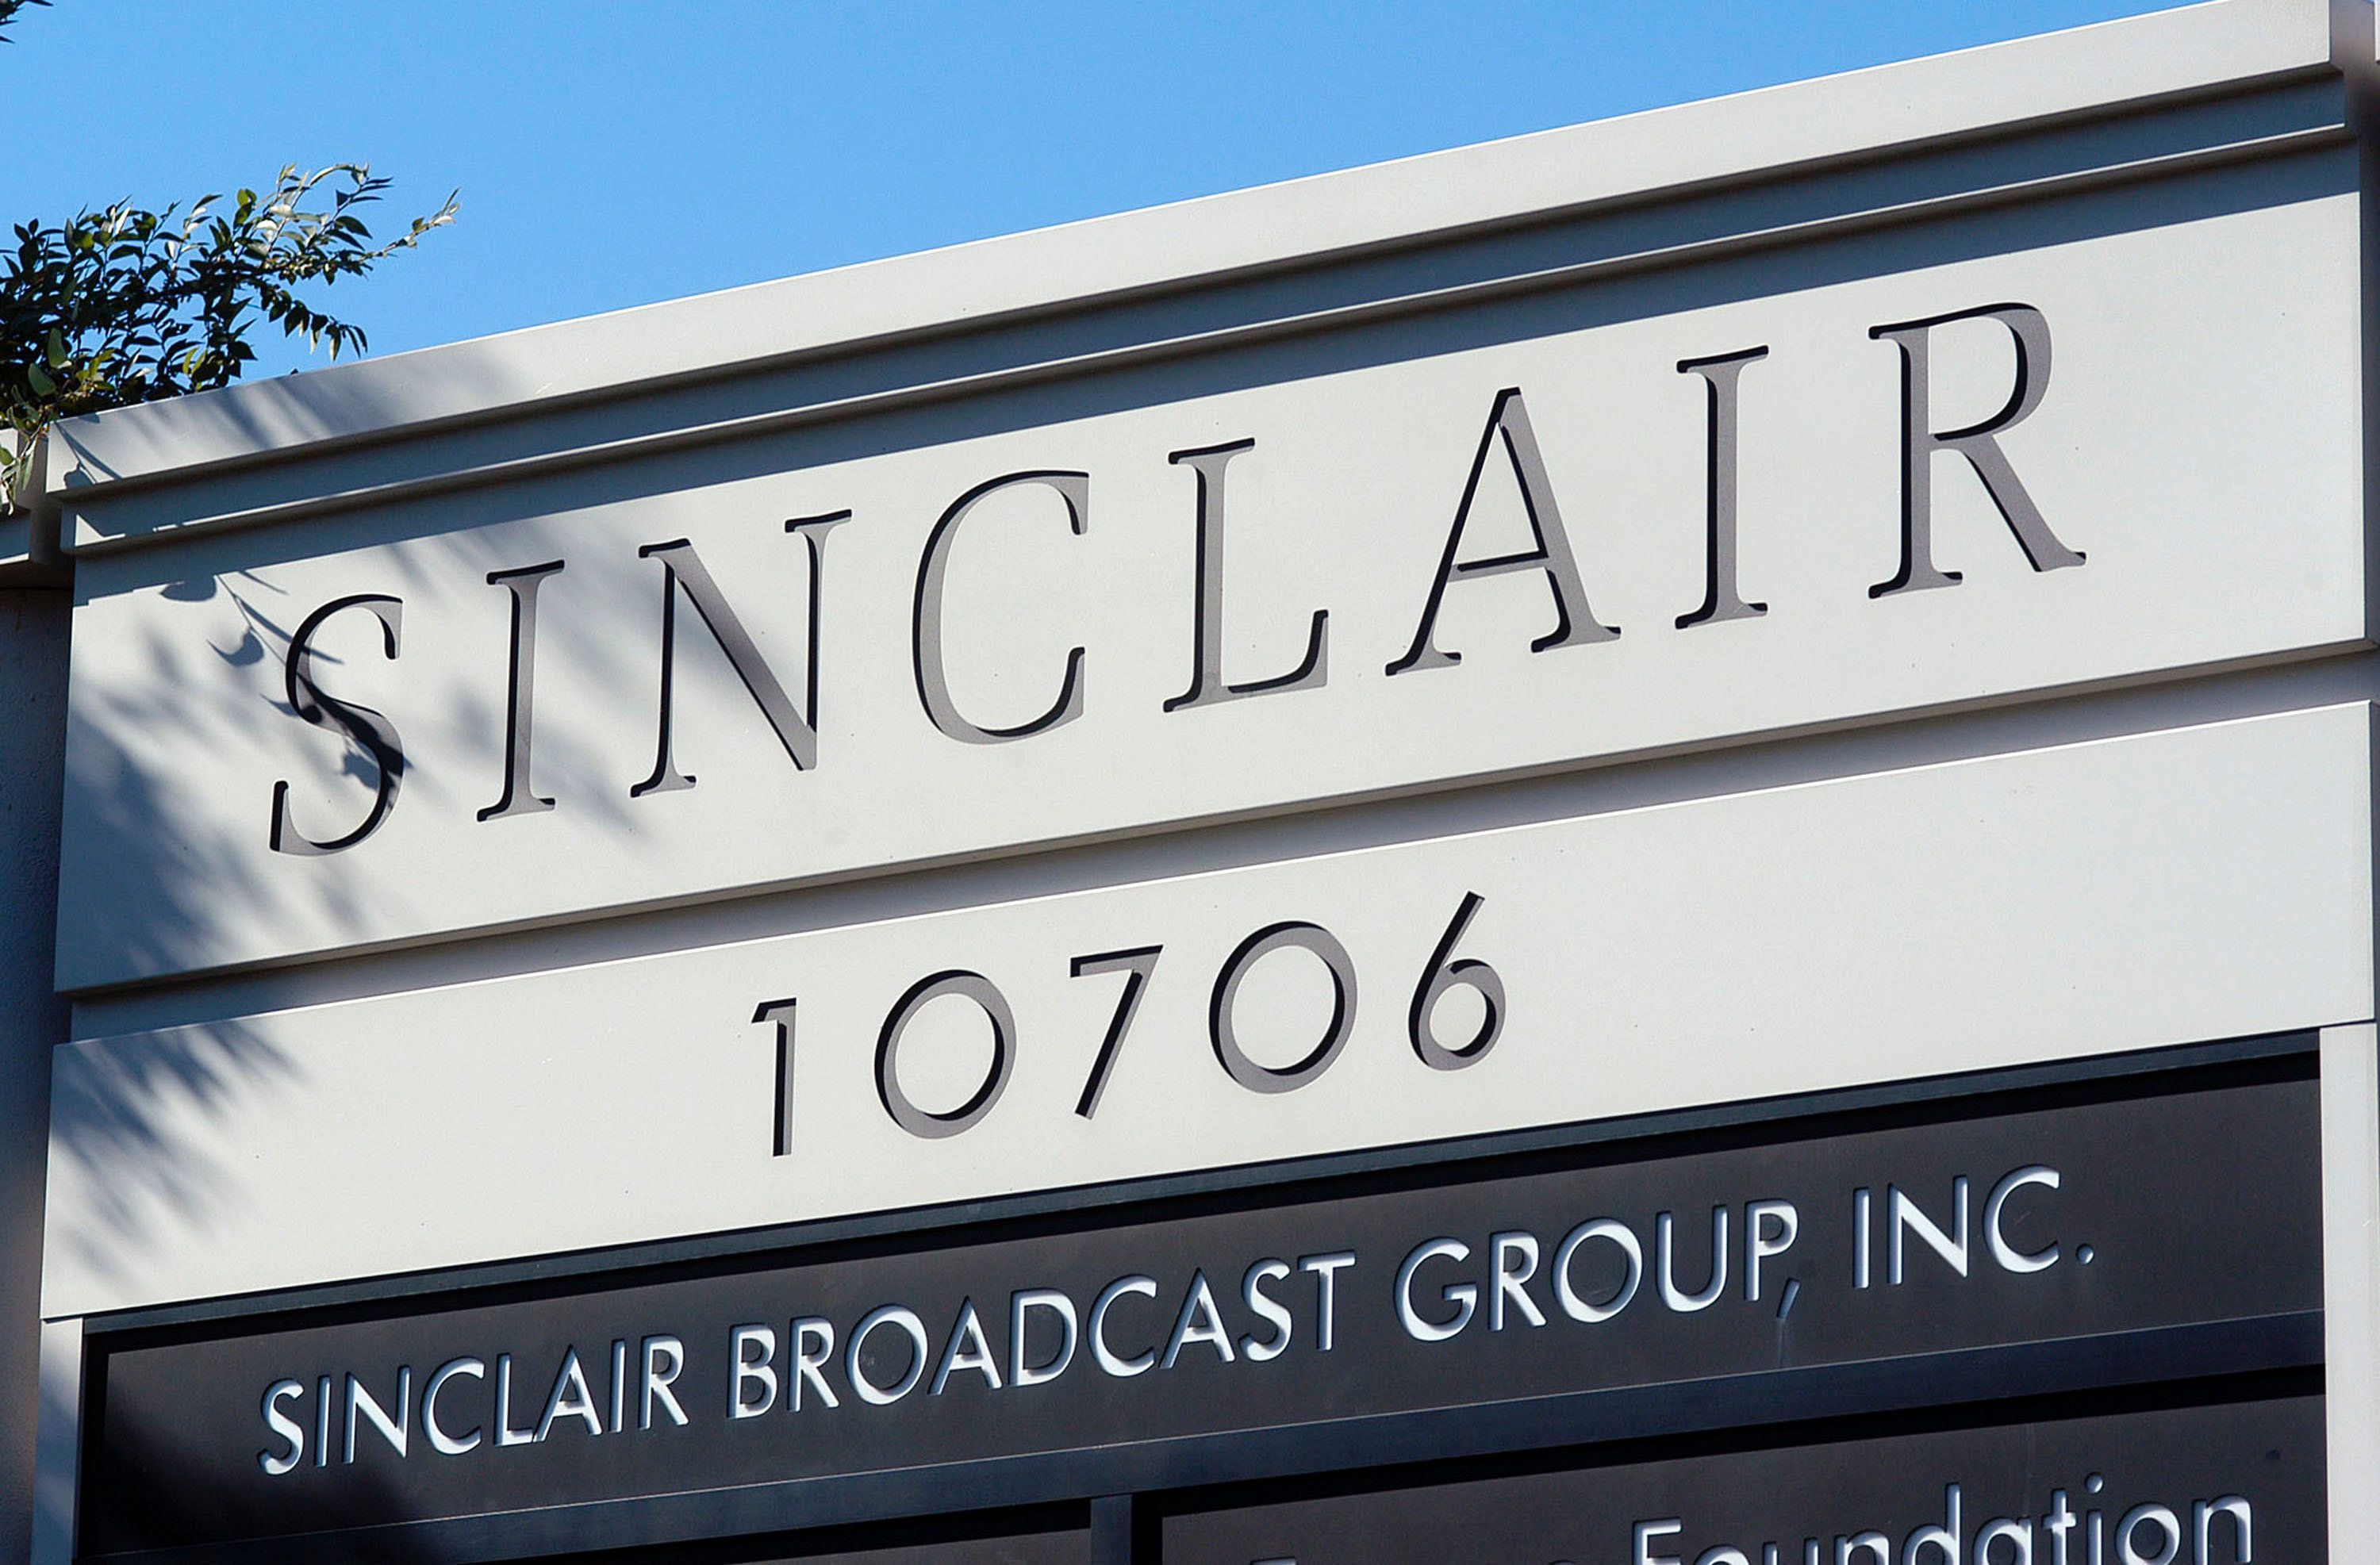 HUNT VALLEY, MD - OCTOBER 12:  A sign for the Sinclair Broadcast building is seen in a buisness district October 12, 2004 in Hunt Valley, Maryland. Sinclair Broadcast Group, the owner of the largest chain of television stations in the nation, plans to preempt regular programming two weeks before the Nov. 2 election to air a documentary that accuses John Kerry of betraying American prisoners during the Vietnam War.  (Photo by William Thomas Cain/Getty Images)